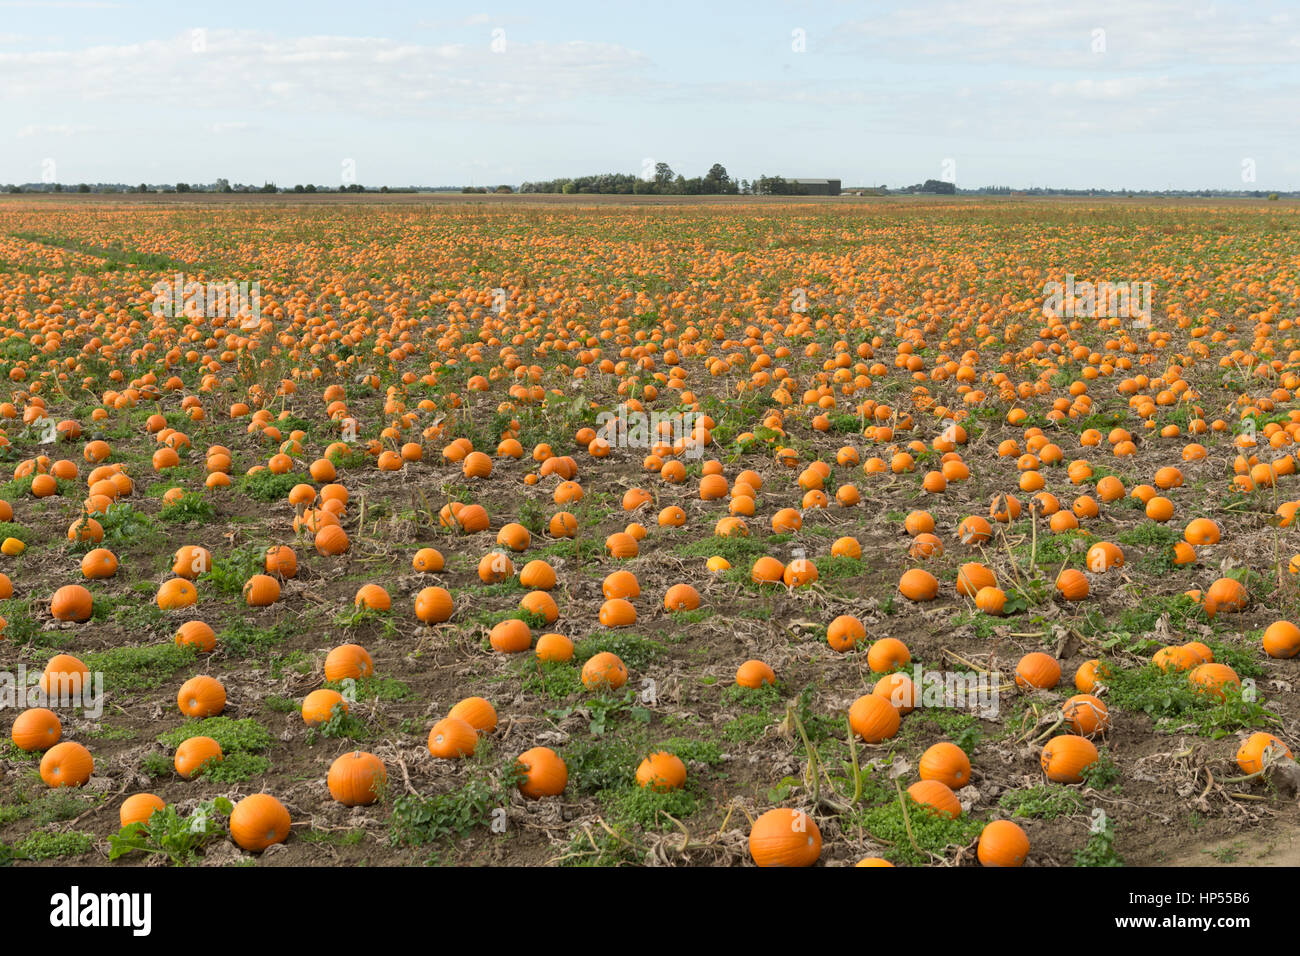 Thousands of ripe orange pumpkins growing in field, fens UK. Unsharpened - Stock Image